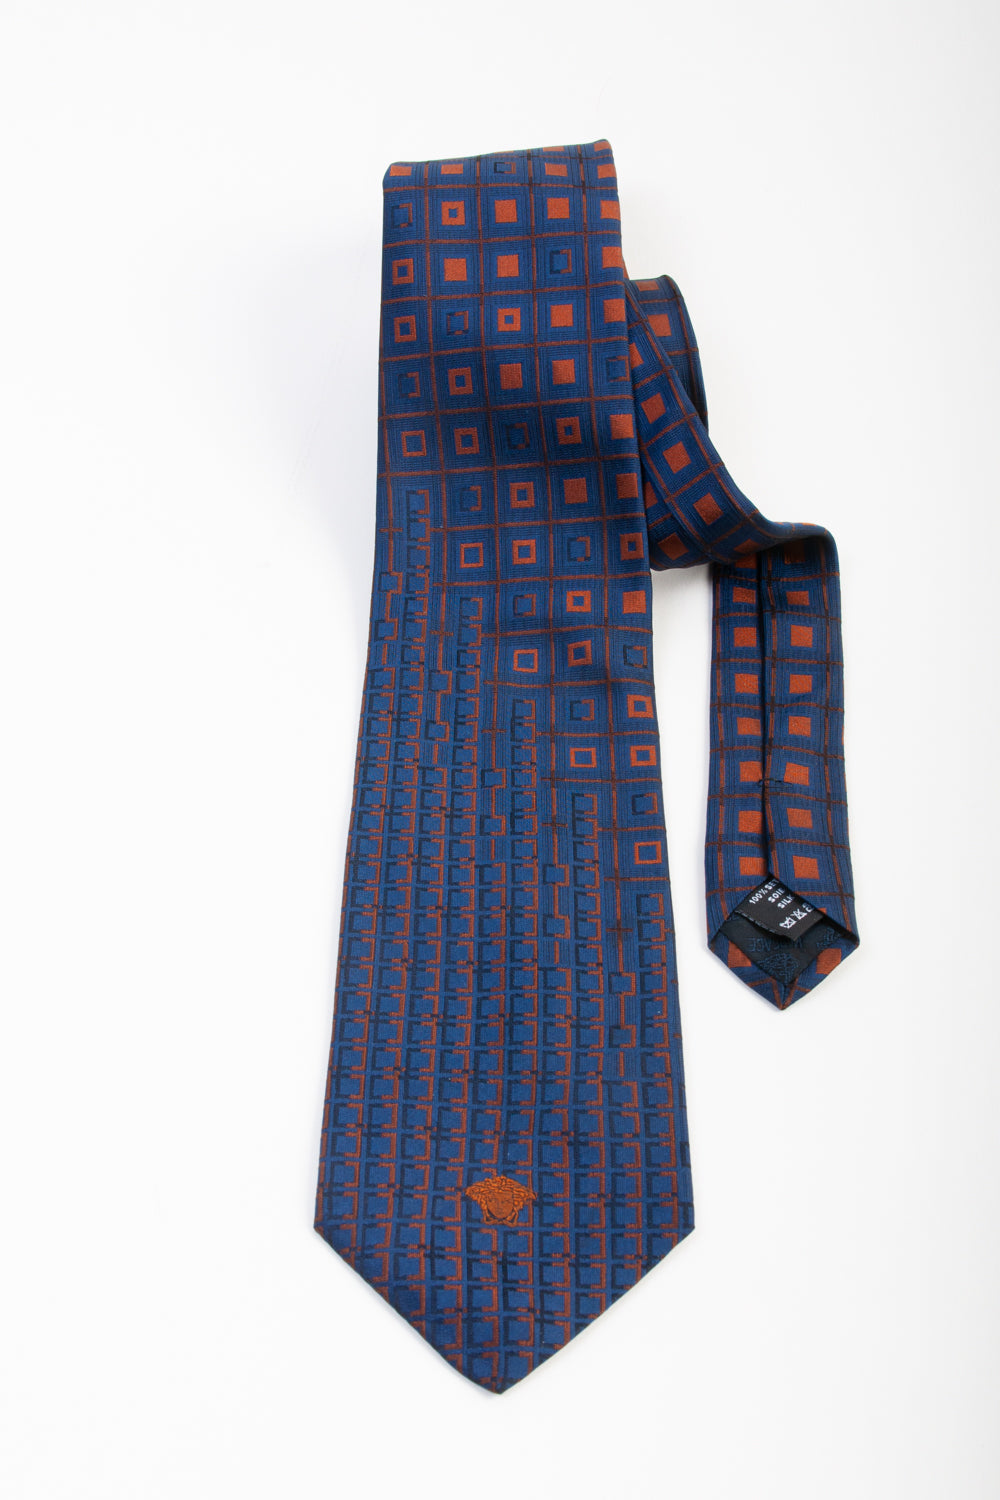 Versace Brown on Navy Blue Geometric Patterned Silk Tie for Luxmrkt.com Menswear Consignment Edmonton